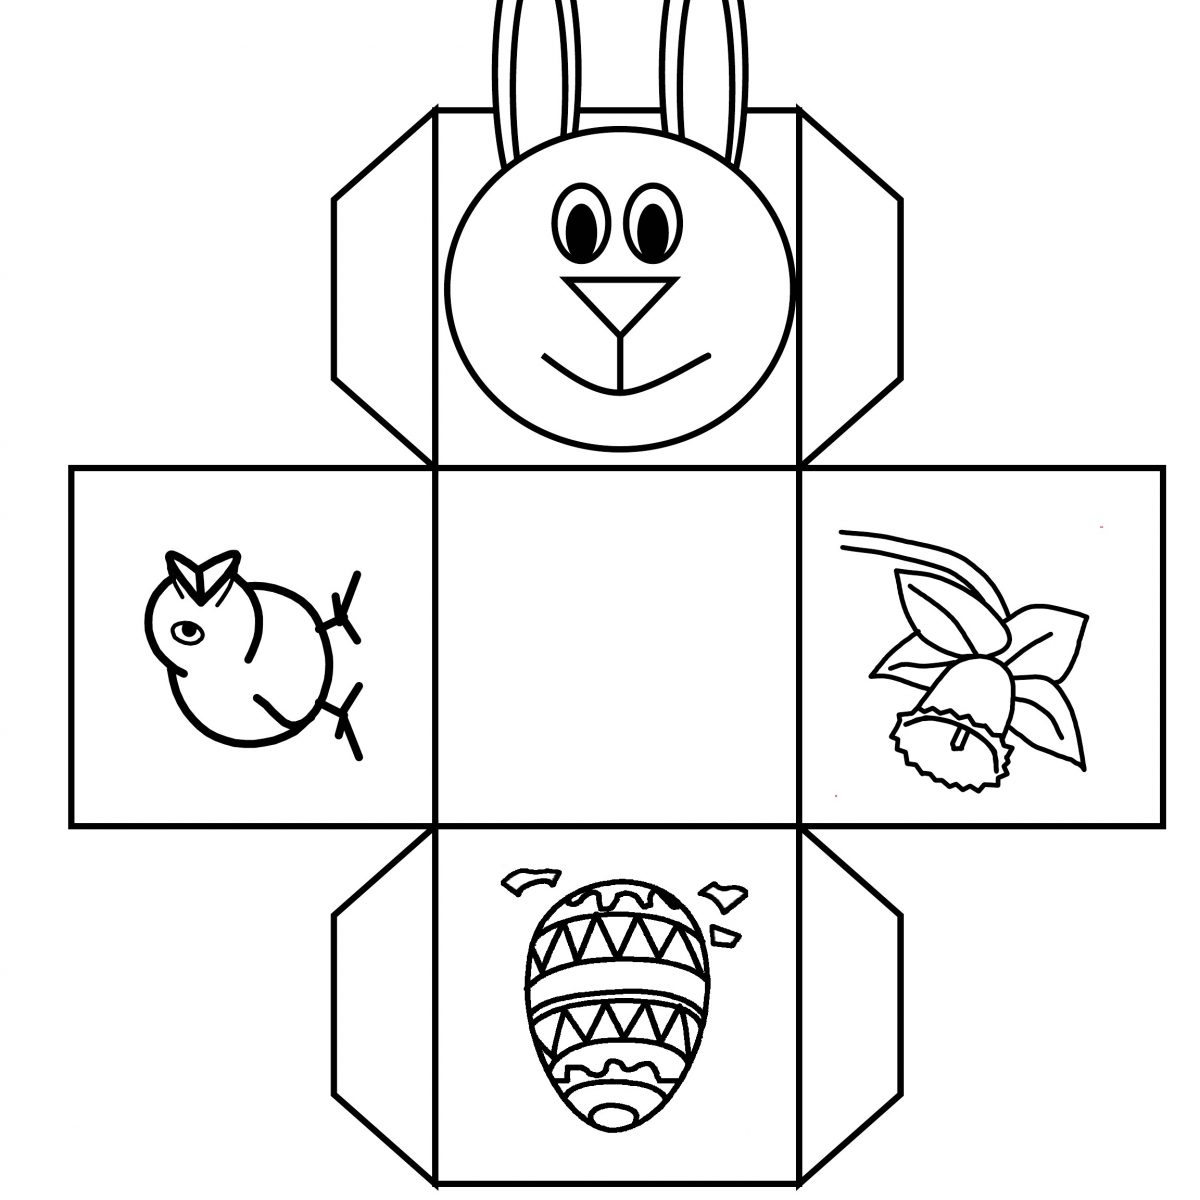 Easter Bunny Basket Template Printable – Happy Easter & Thanksgiving - Free Printable Easter Egg Basket Templates